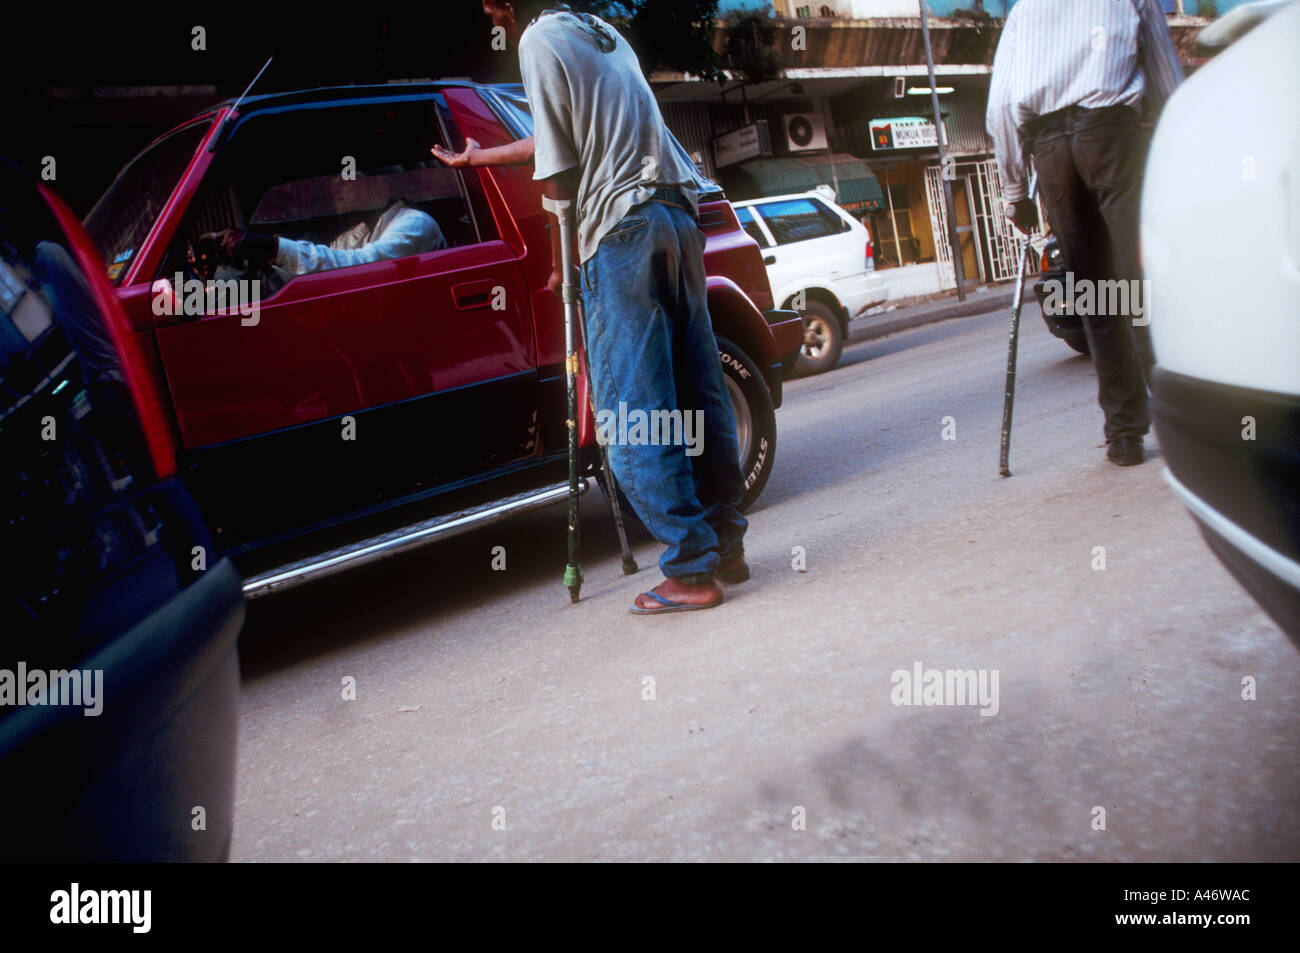 Dasilio and his friend, both injured during the civil war, beg from wealthy Luandans in their cars. Luanda, Angola - Stock Image